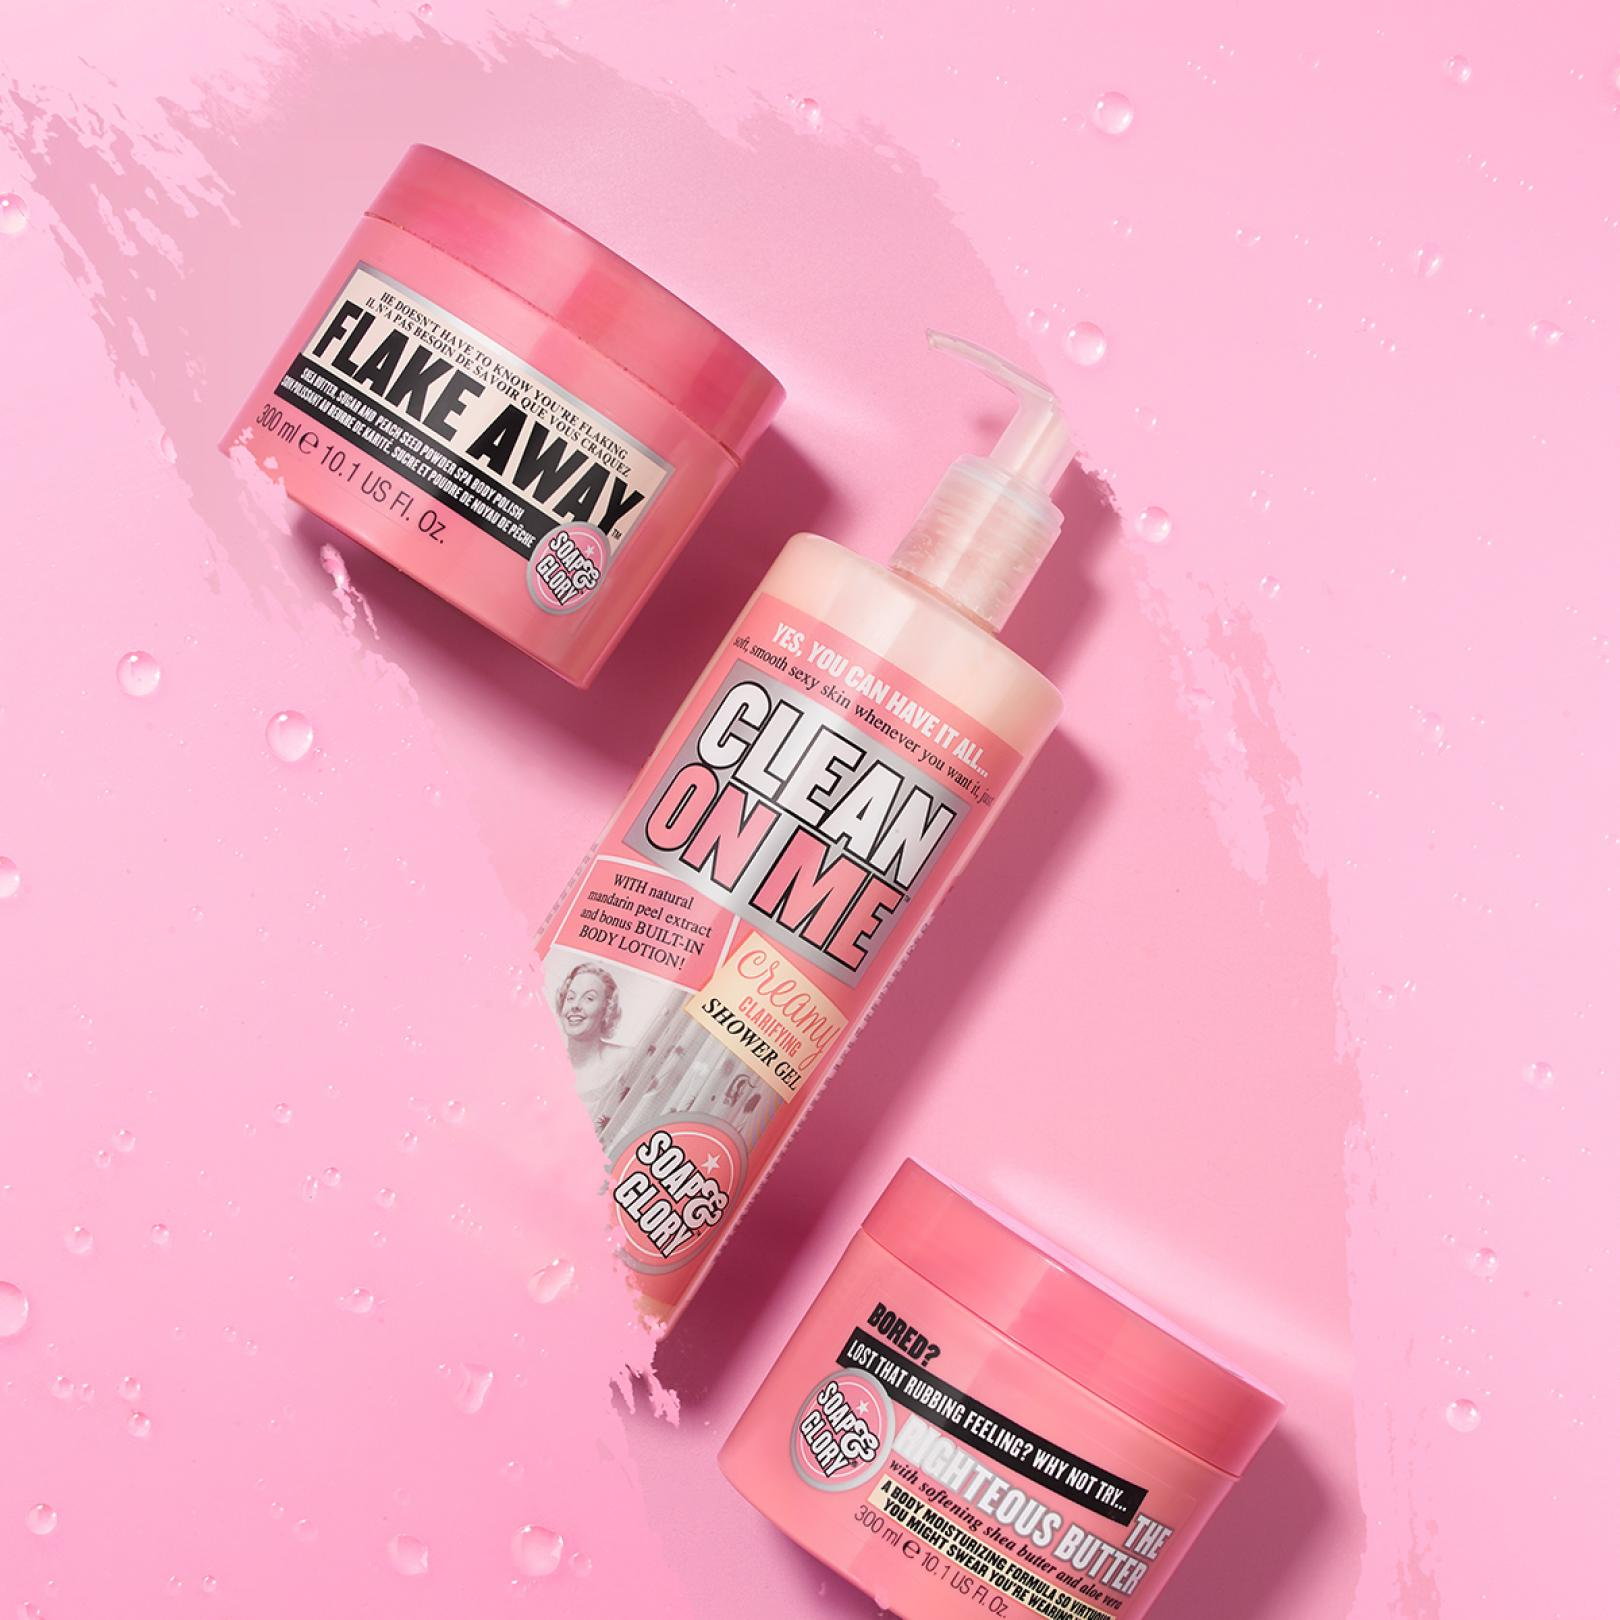 Soap & Glory Beauty Products